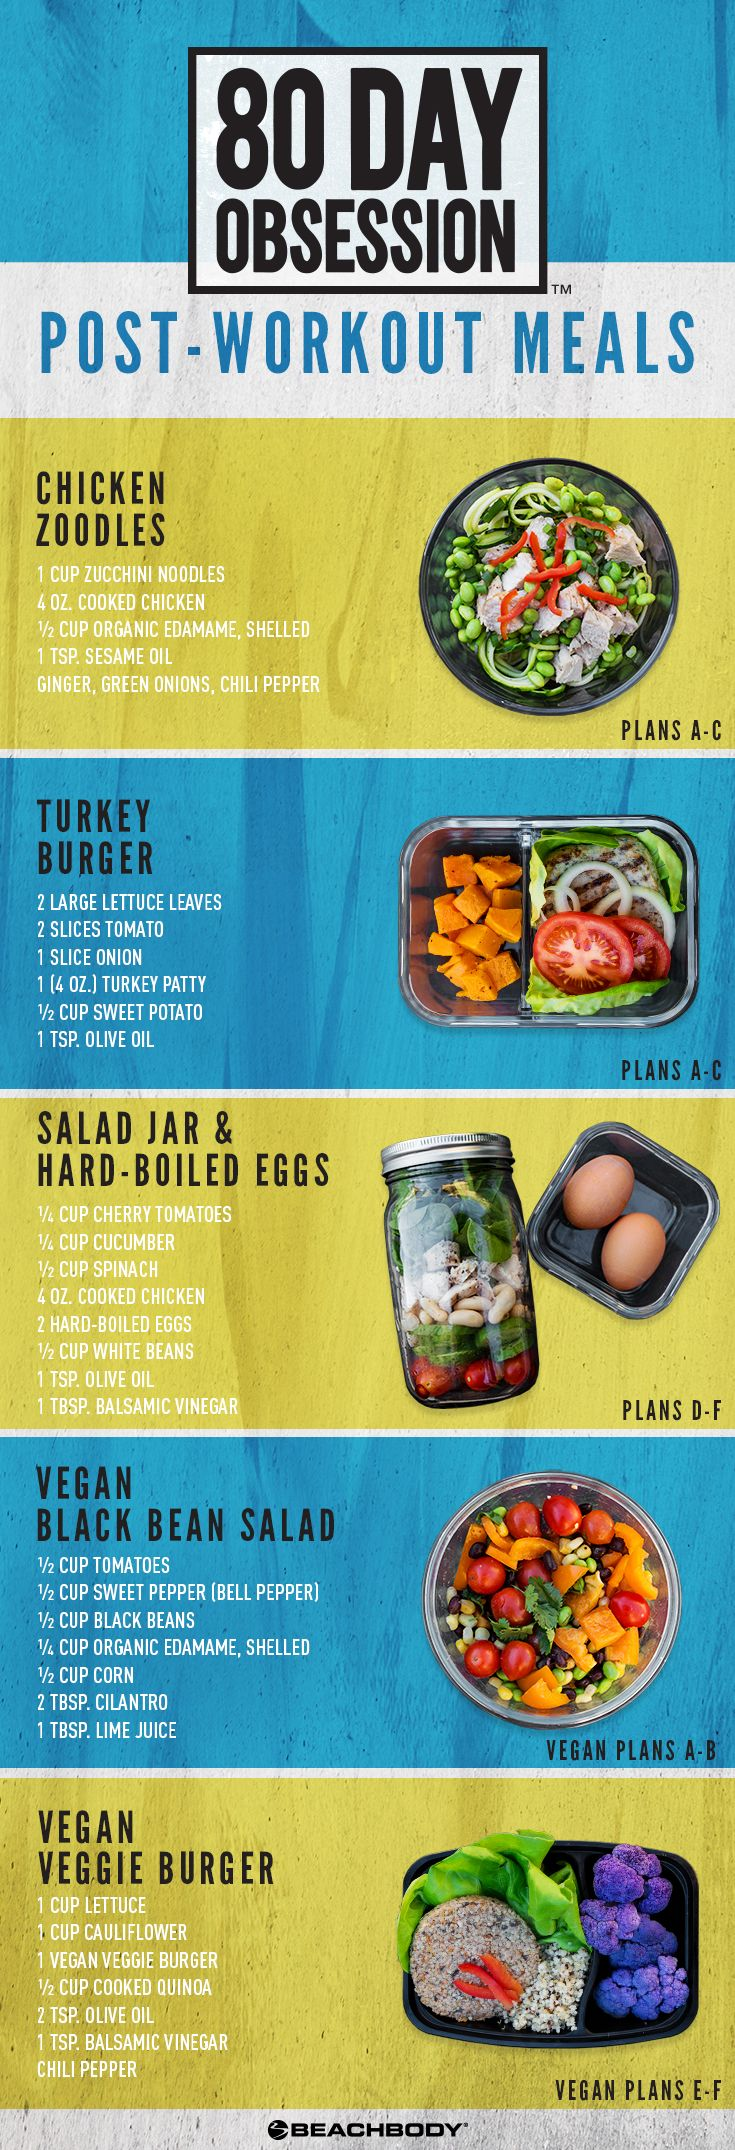 Post-Workout Meals for 80-Day Obsession, zucchini noodles, turkey burger with sweet potatoes, Mason jar salad, black bean salad, and vegan veggie burger